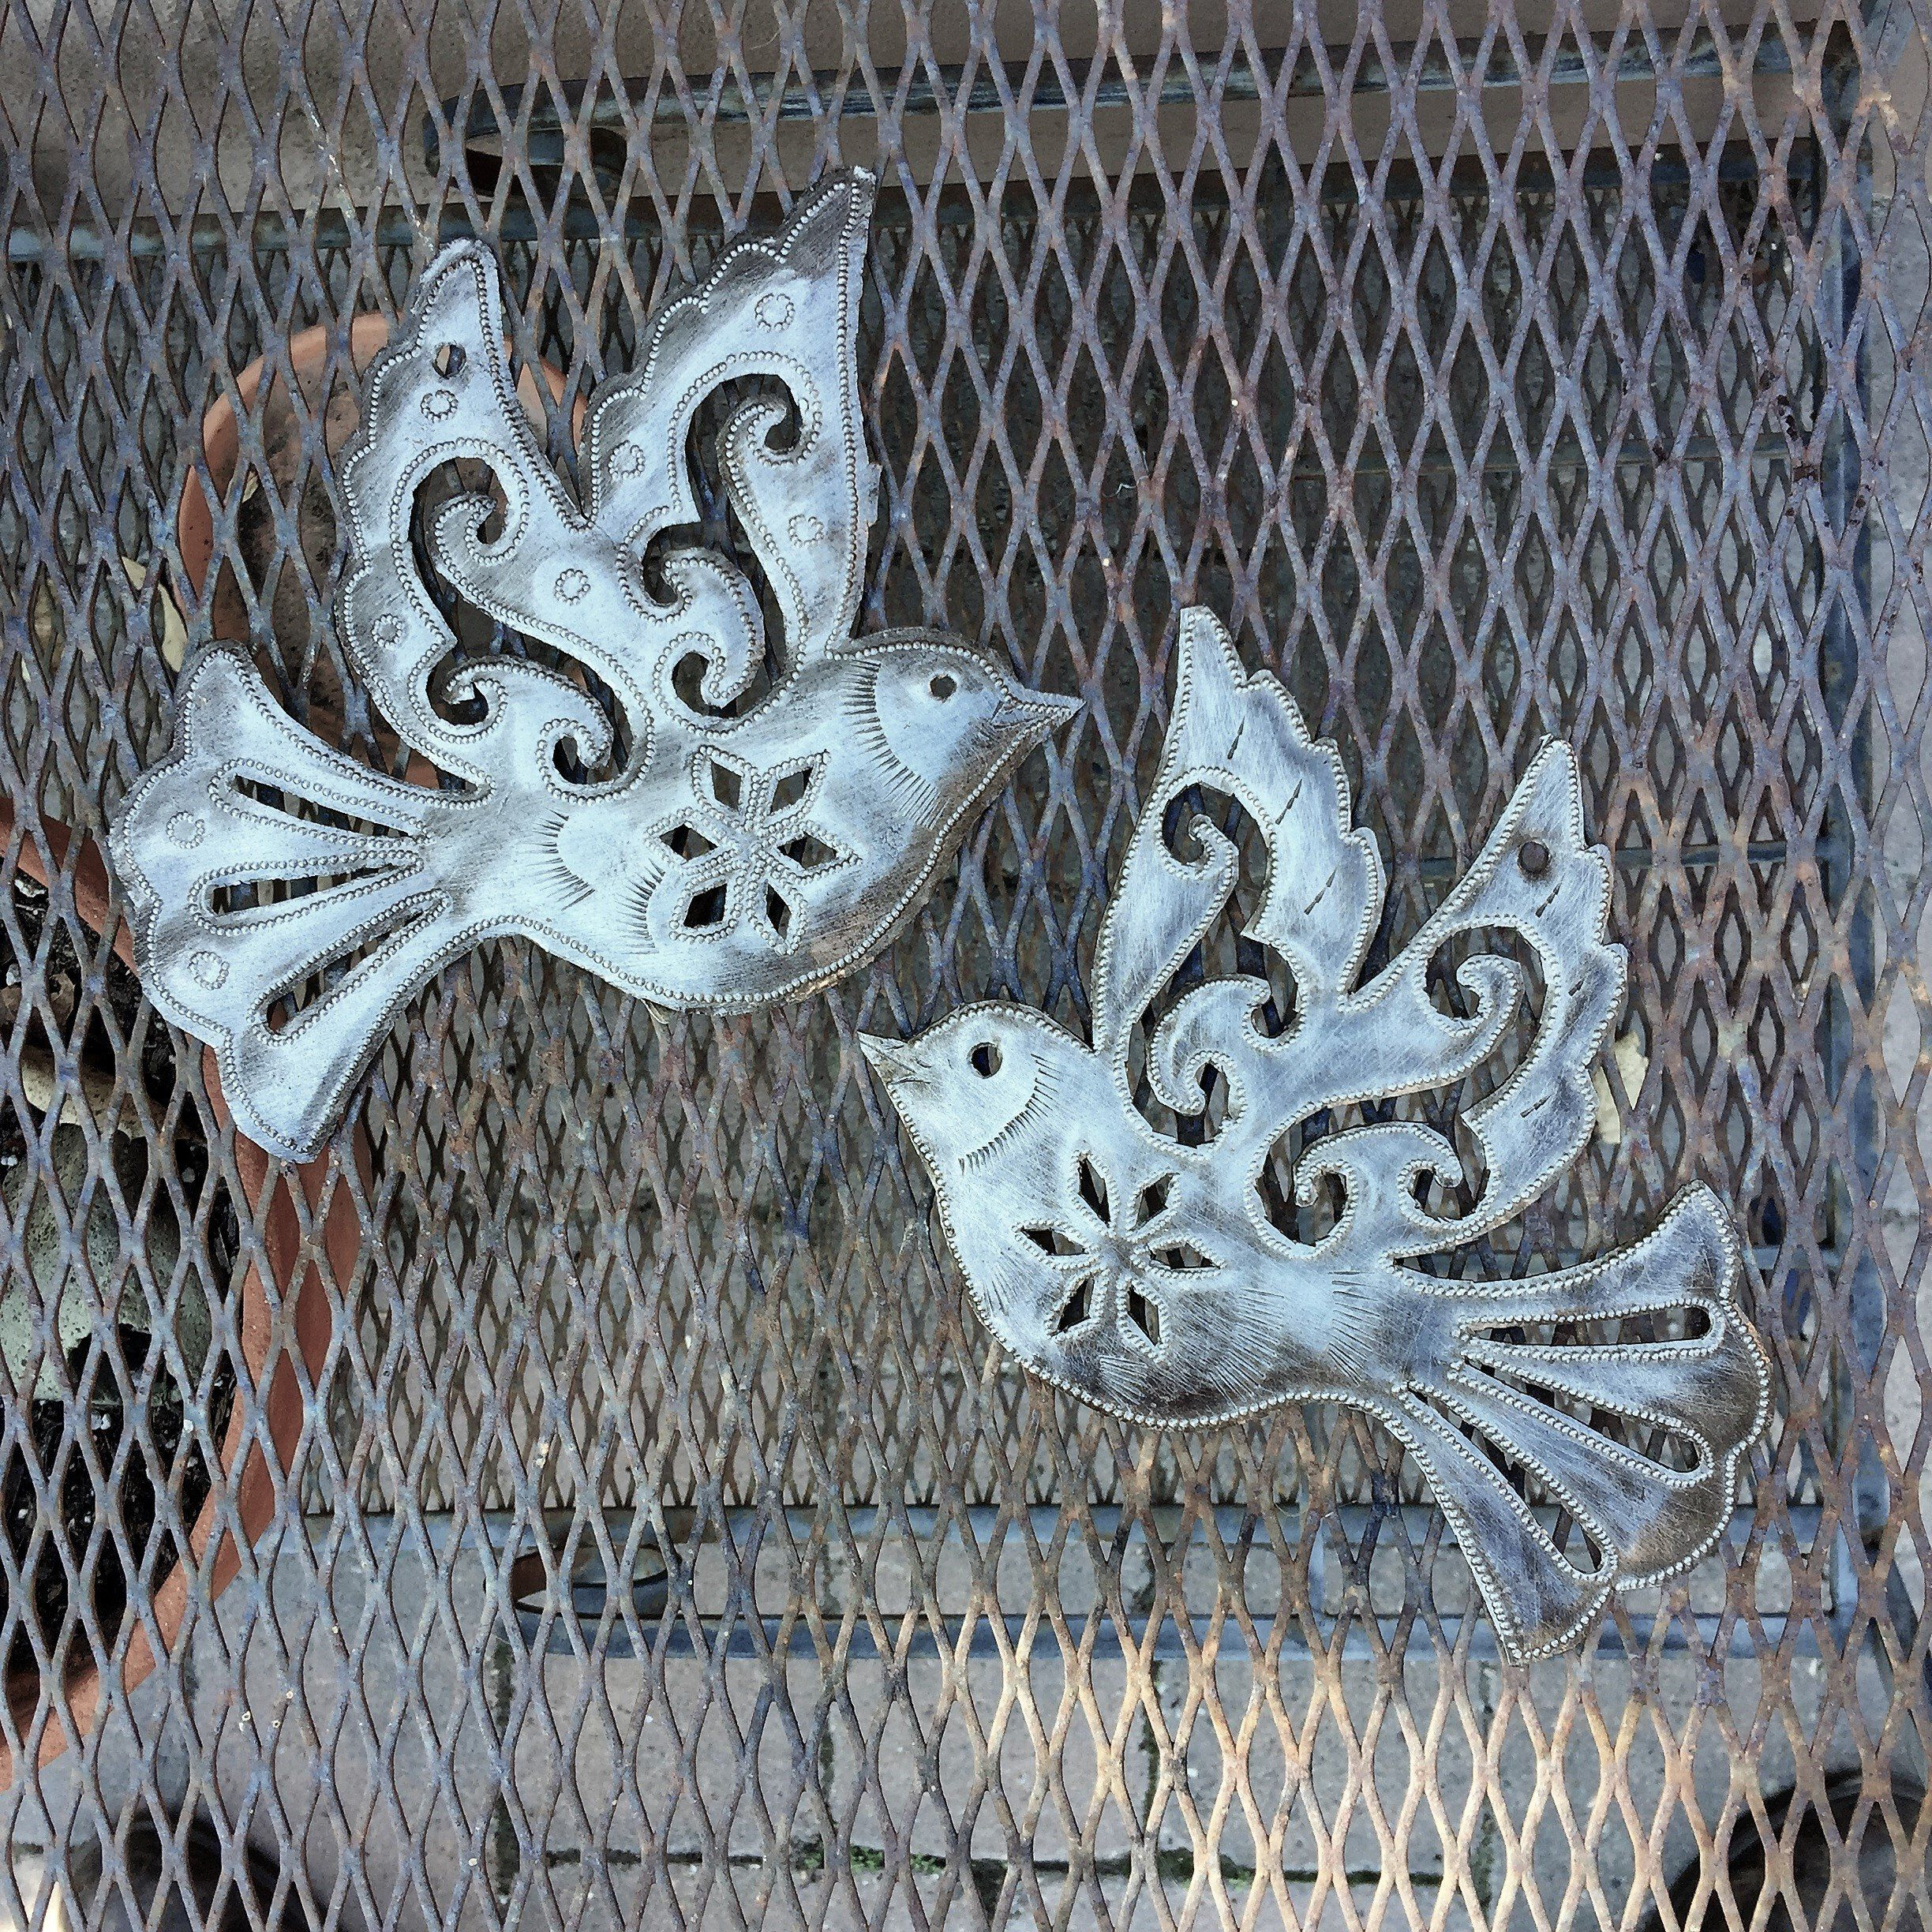 Dove Flying Birds Metal Art Haiti Engraved Inspirational Wall Art Set Of 2 7 X 8 5 You Can Learn More Infor Inspirational Wall Art Wall Art Sets Birds Flying